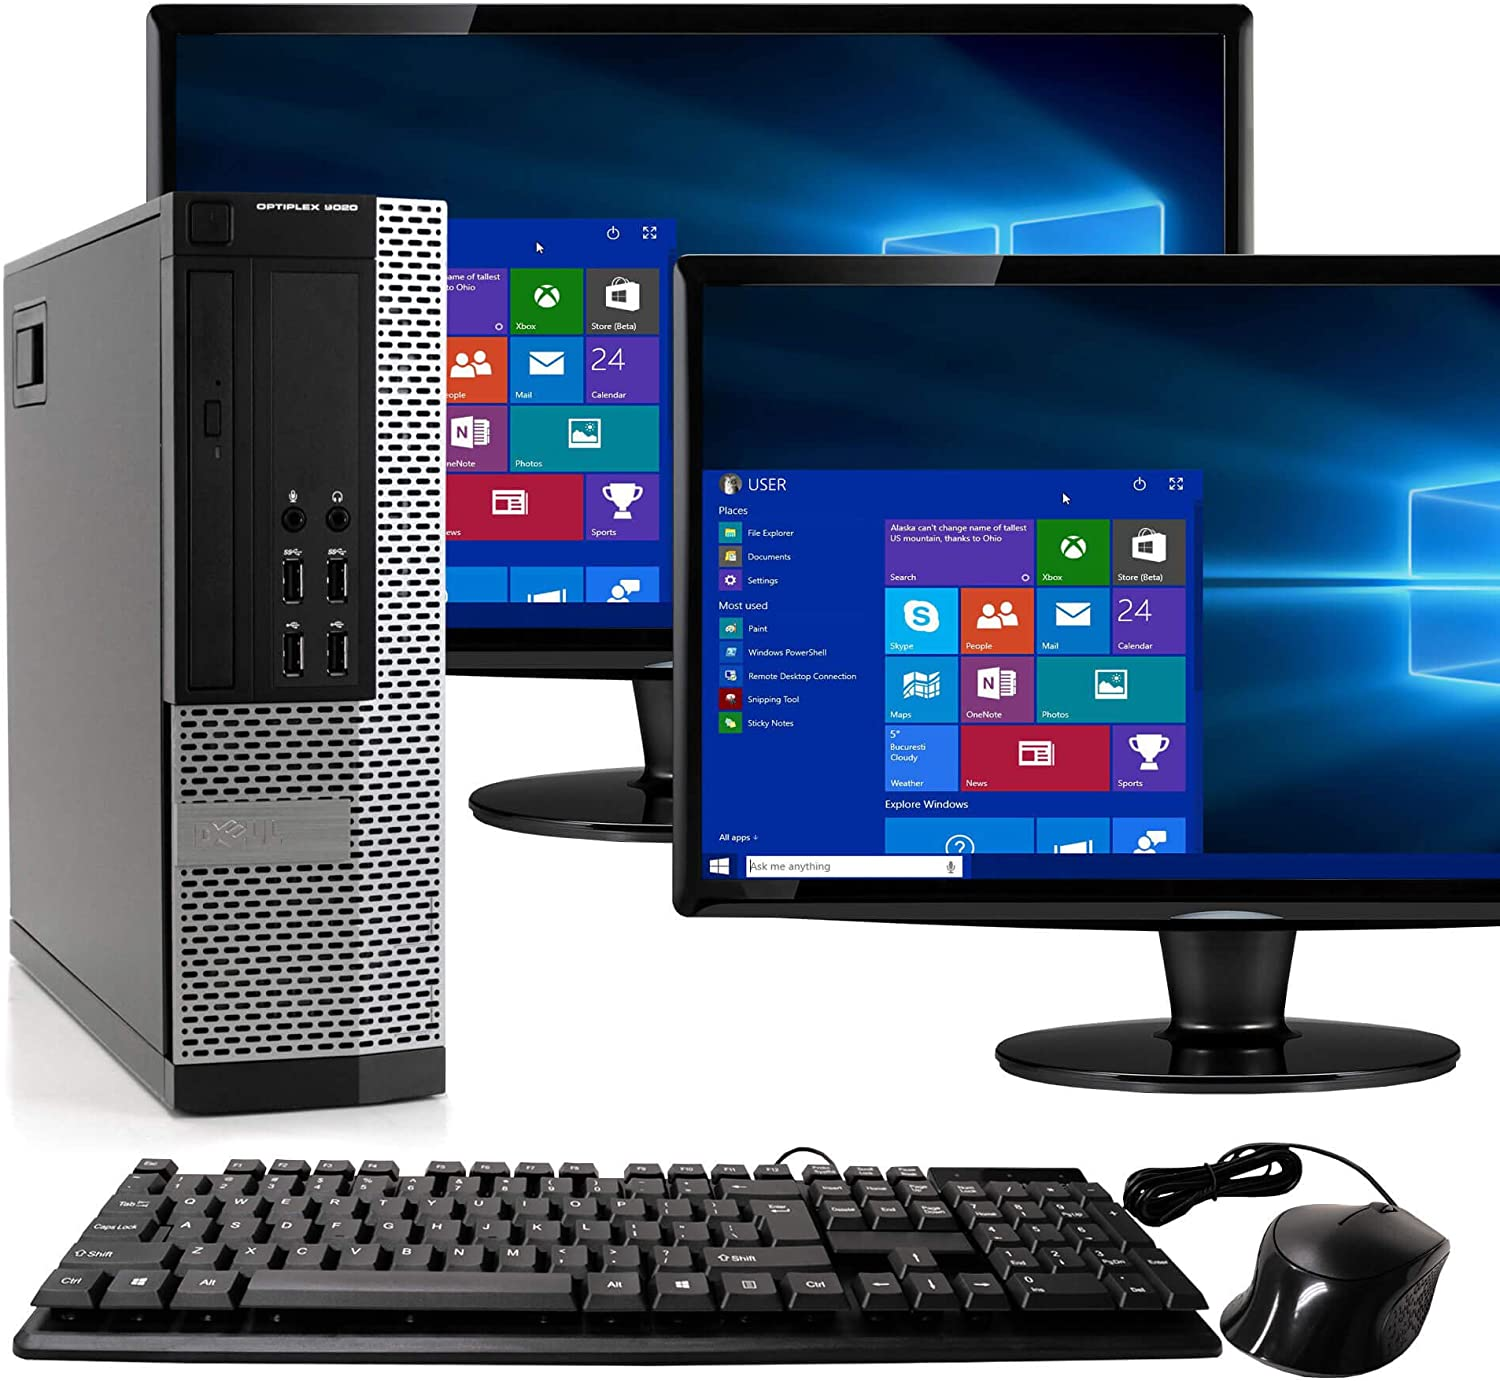 Dell Optiplex 9020 SFF Computer Desktop PC, Intel Core i5 Processor, 16 GB Ram, 2 TB Hard Drive, WiFi, Bluetooth 4.0, DVD-RW, Dual 19 inch LCD Monitors Windows 10 Pro (Renewed)